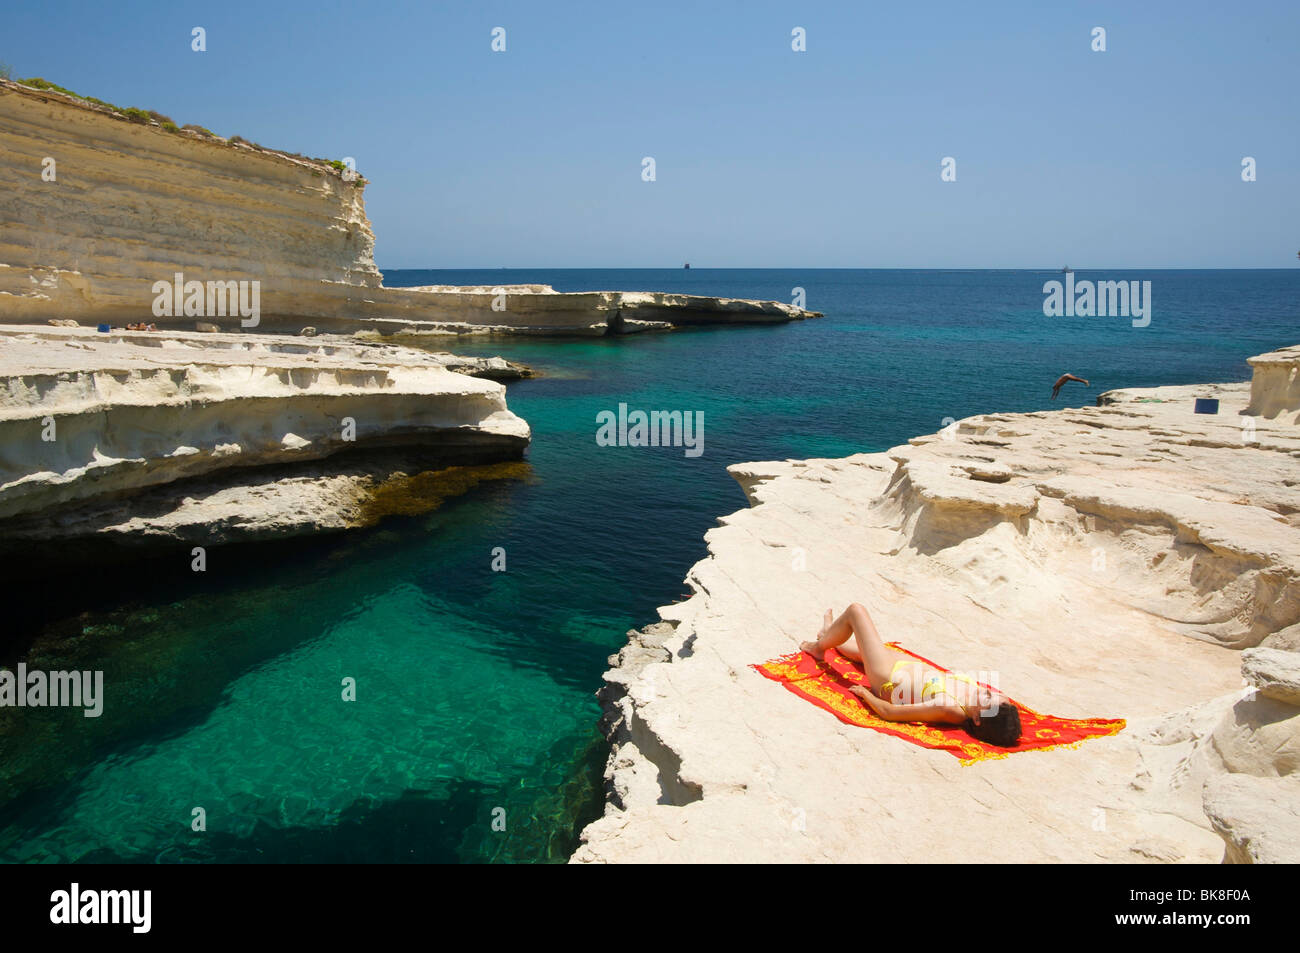 Peter's Pool near Marsaxlokk, Malta, Europe - Stock Image